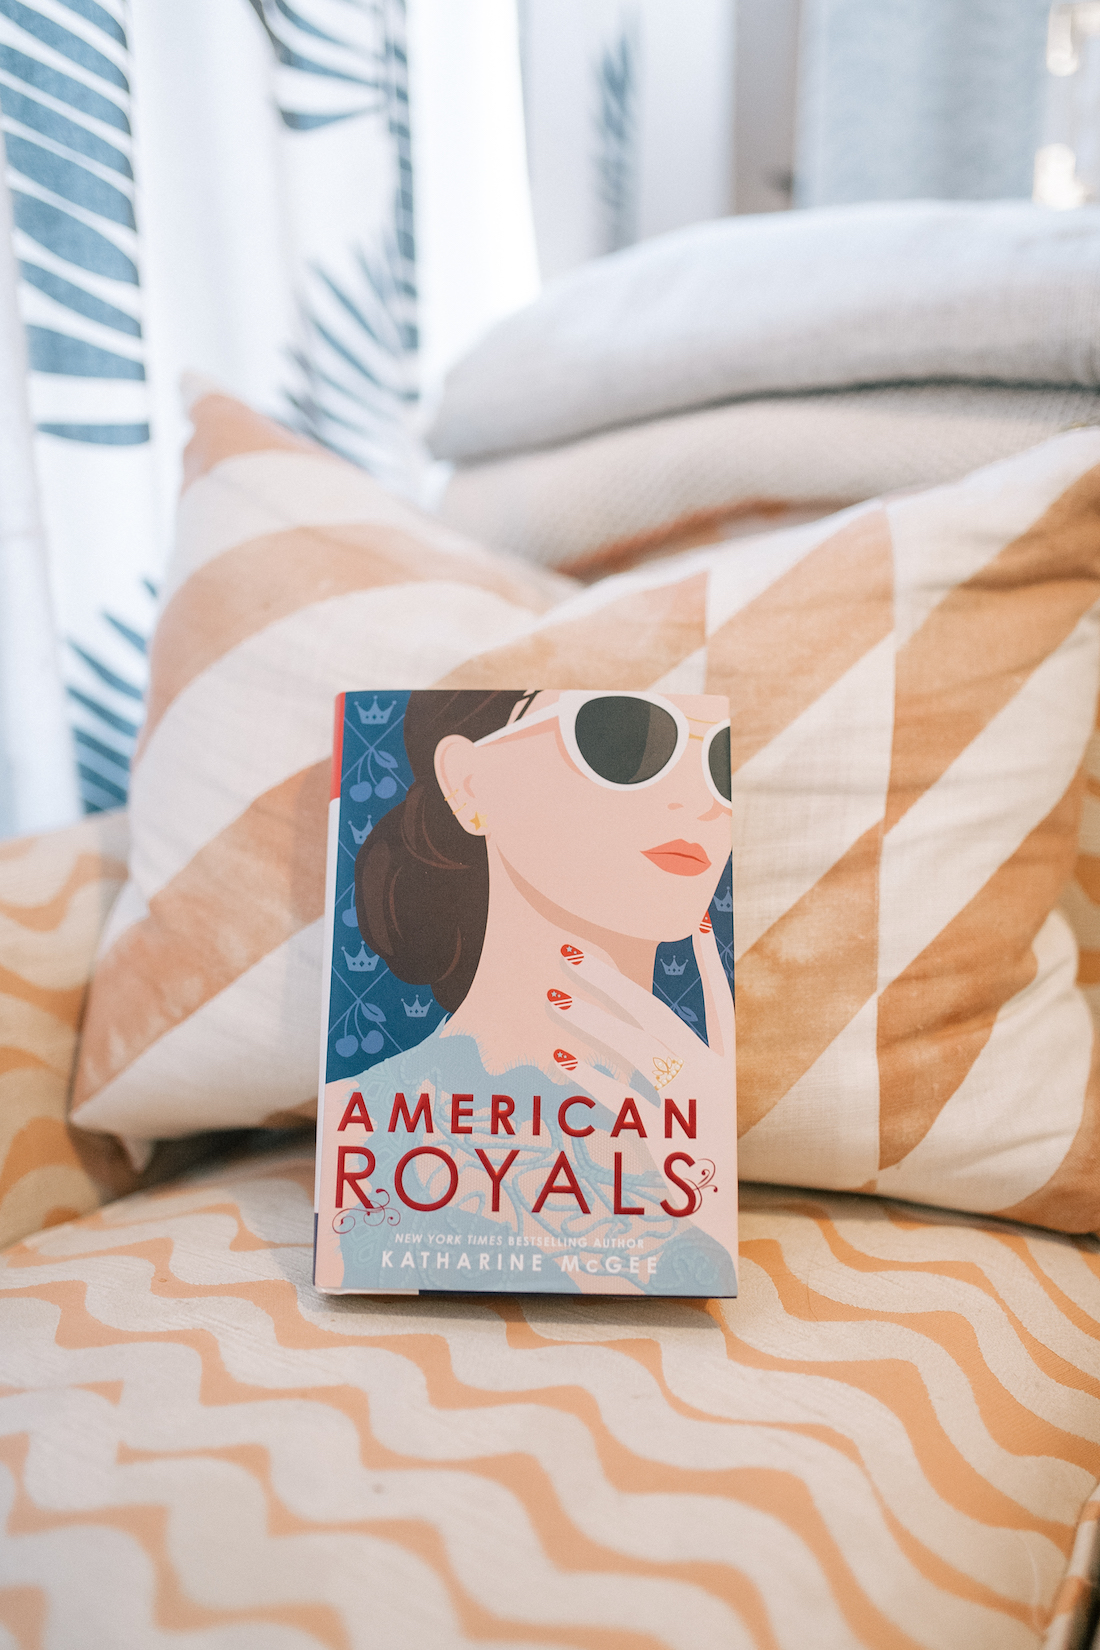 a book for weekend reading called American royals